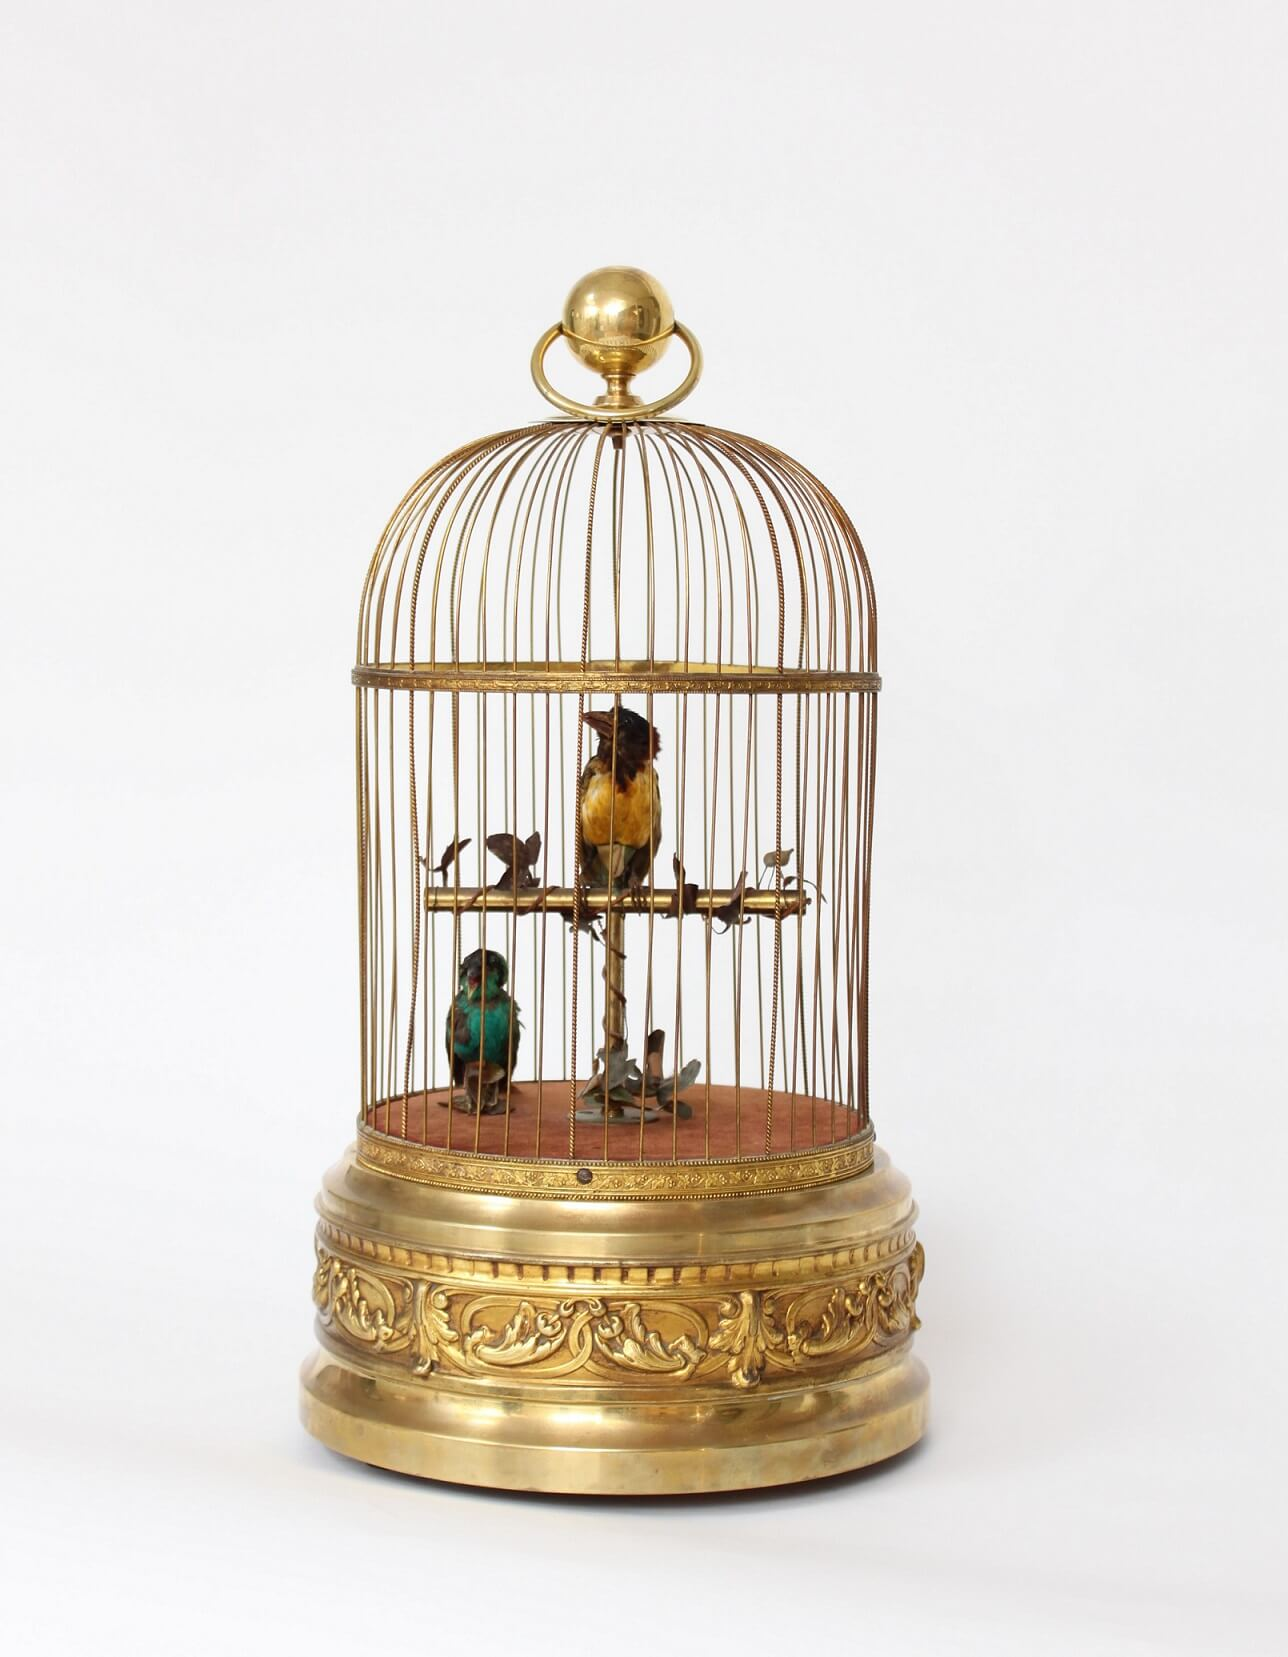 French-Bontems-automaton-animated-bird Cage-mechanism-